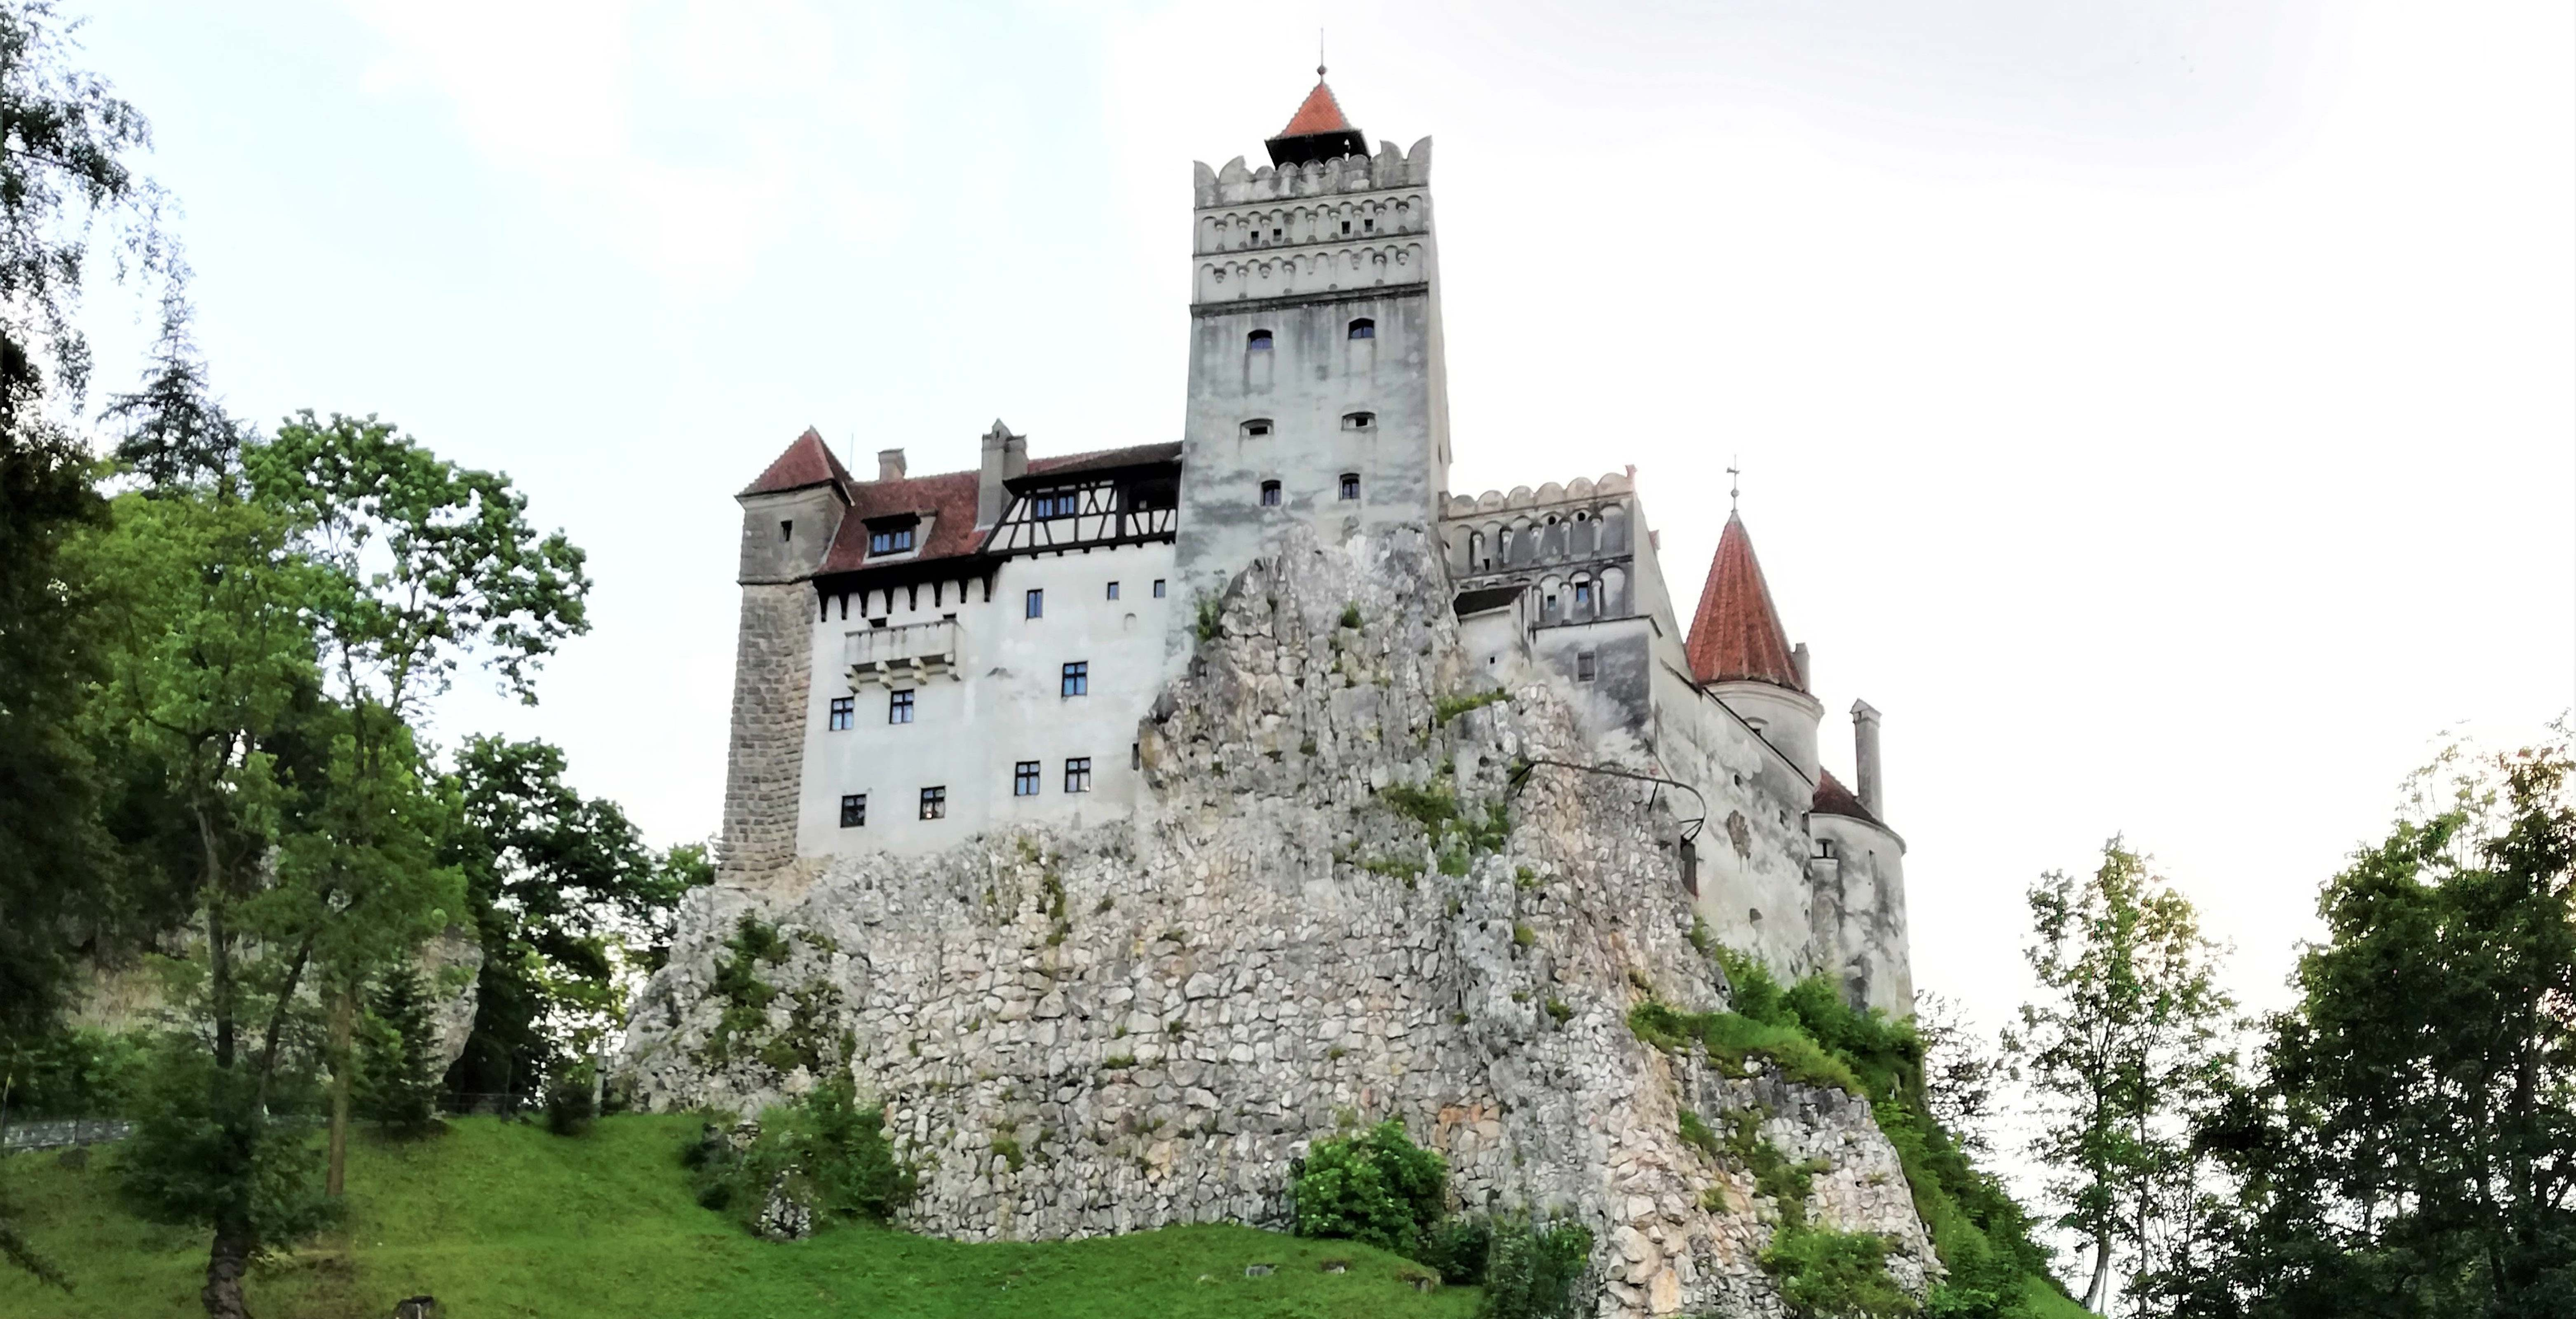 Dracula Castle Bran Romania on the Map